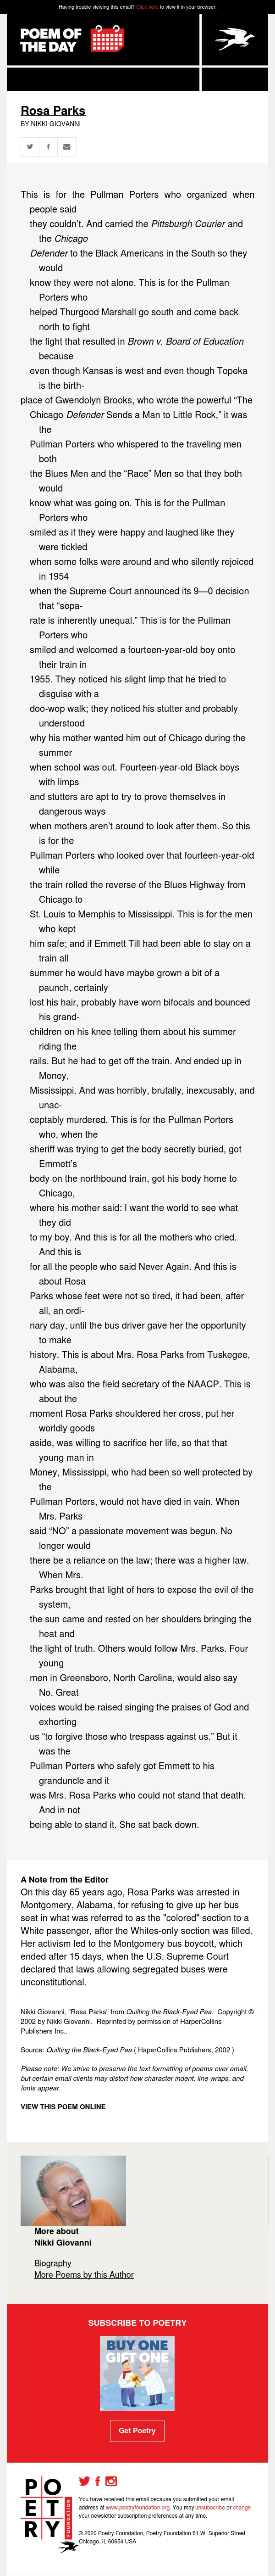 Poem of the Day: Rosa Parks